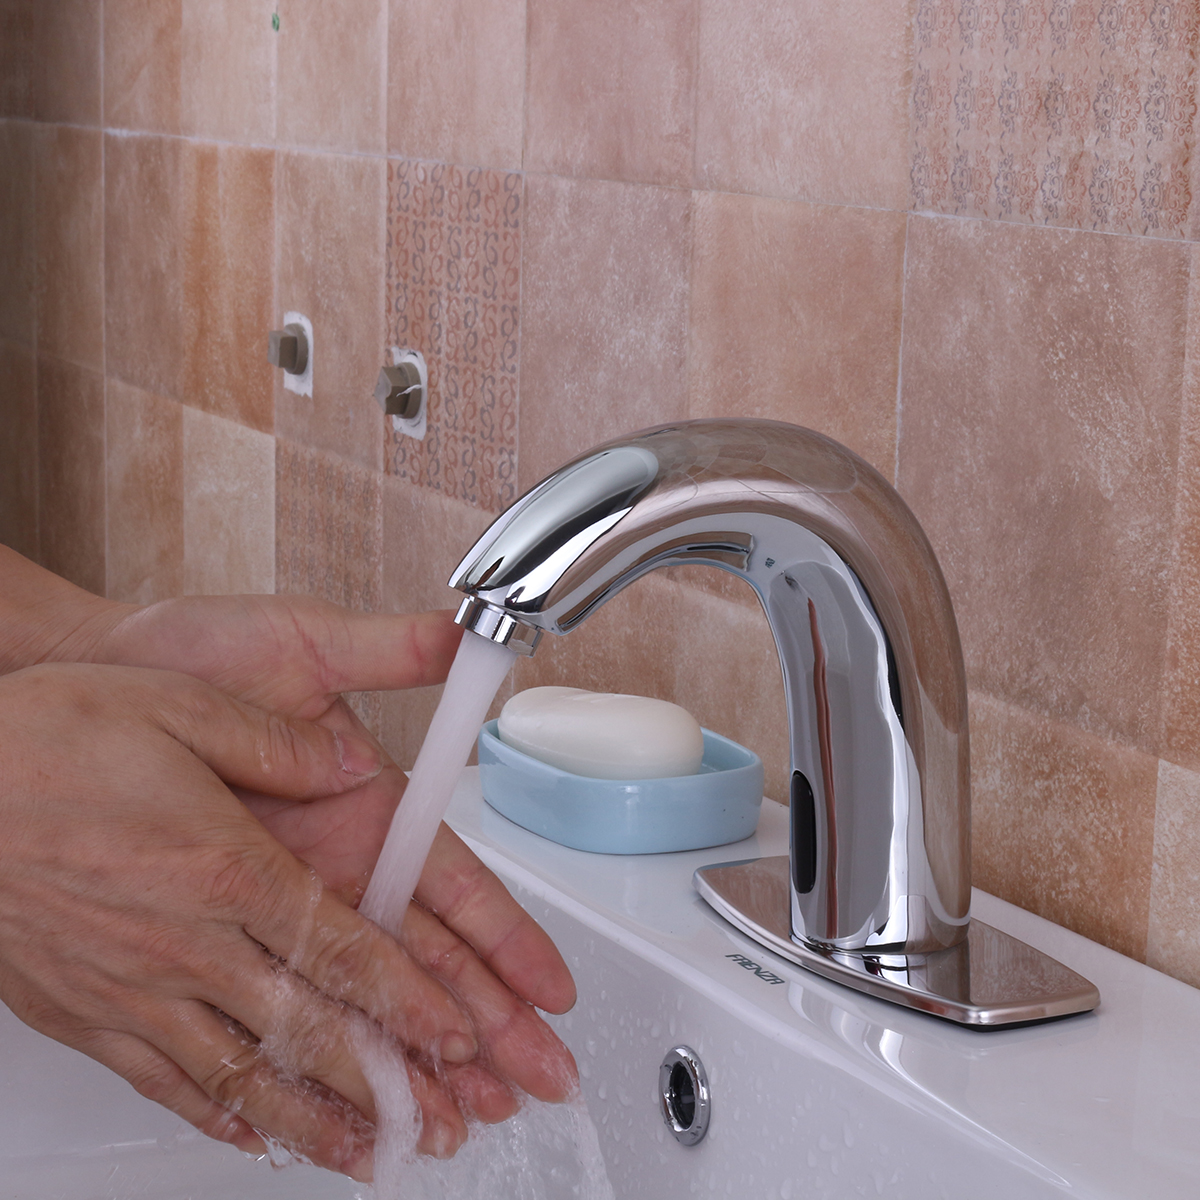 Automatic Sensor Touchless Faucet Hands Free Bathroom Sink Cold Water Tap Commercial Hands Free Tap